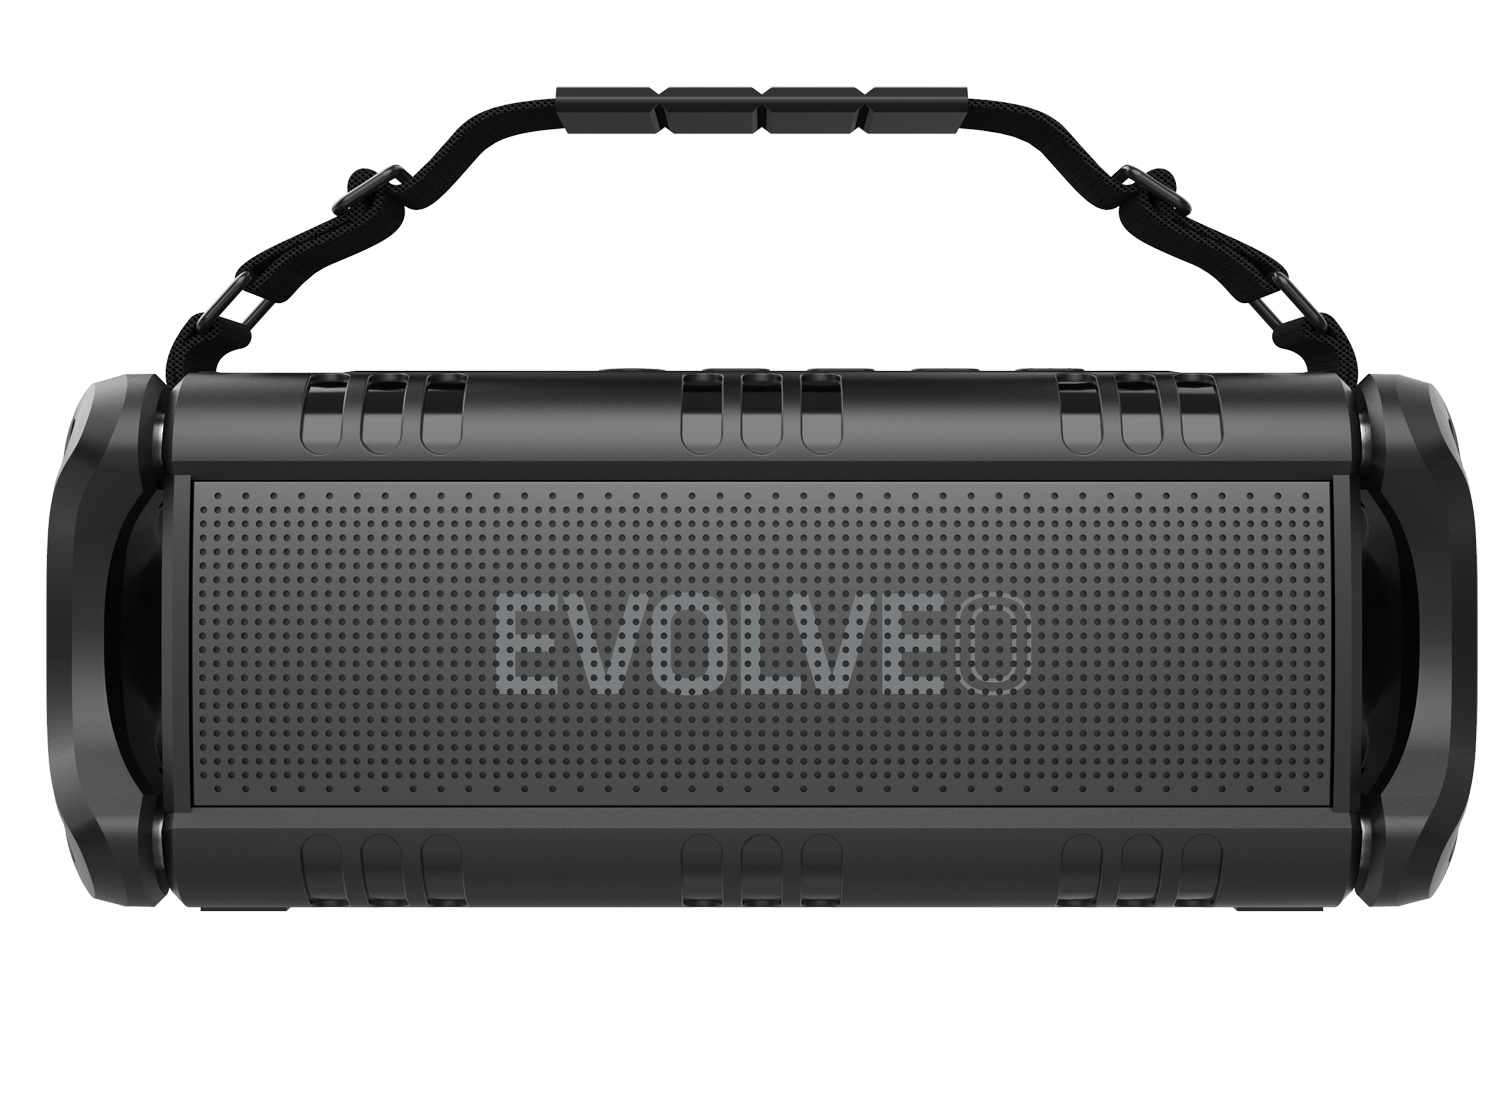 EVOLVEO Armor POWER 6, outdoorový Bluetooth reproduktor